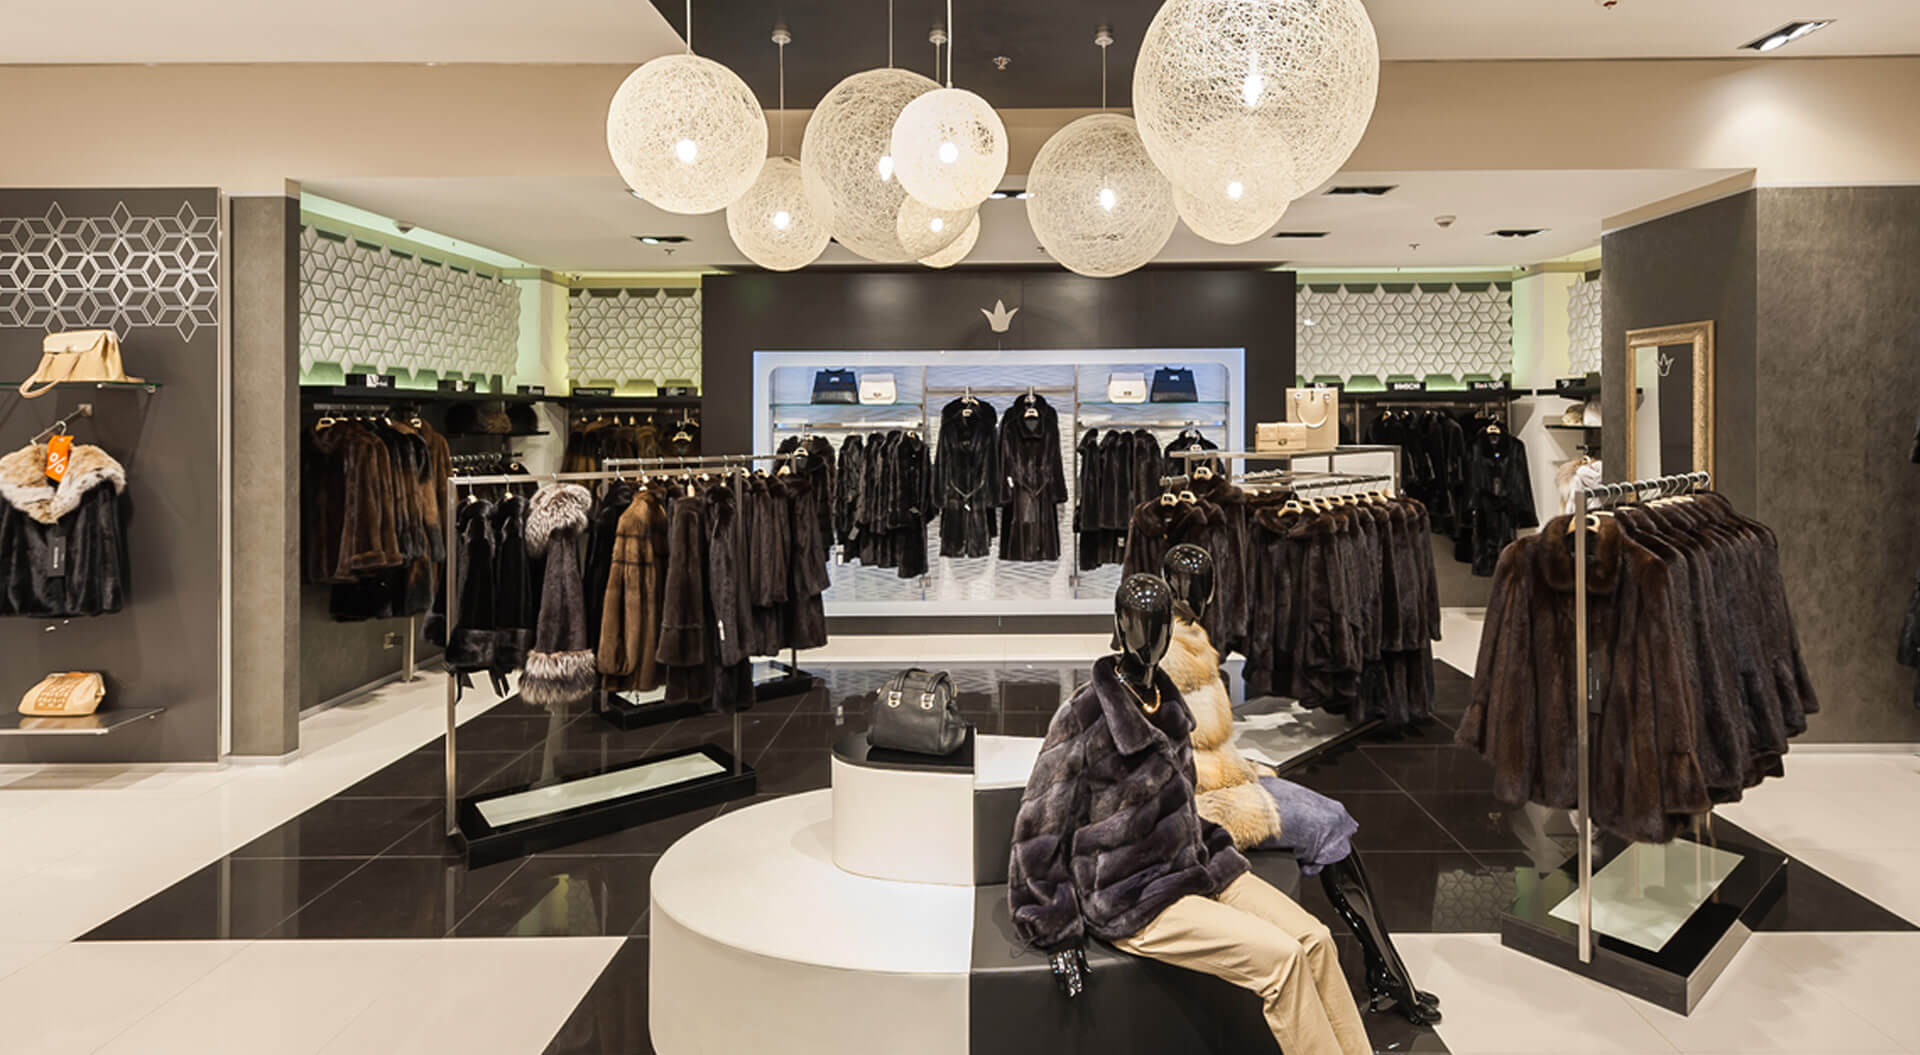 Hypermarket fashion store, best retail interior design, inspiring concepts, rebrand, new trends, ideas, marketing strategy, in-store communications format planning, shop layout, Snow Queen Russia